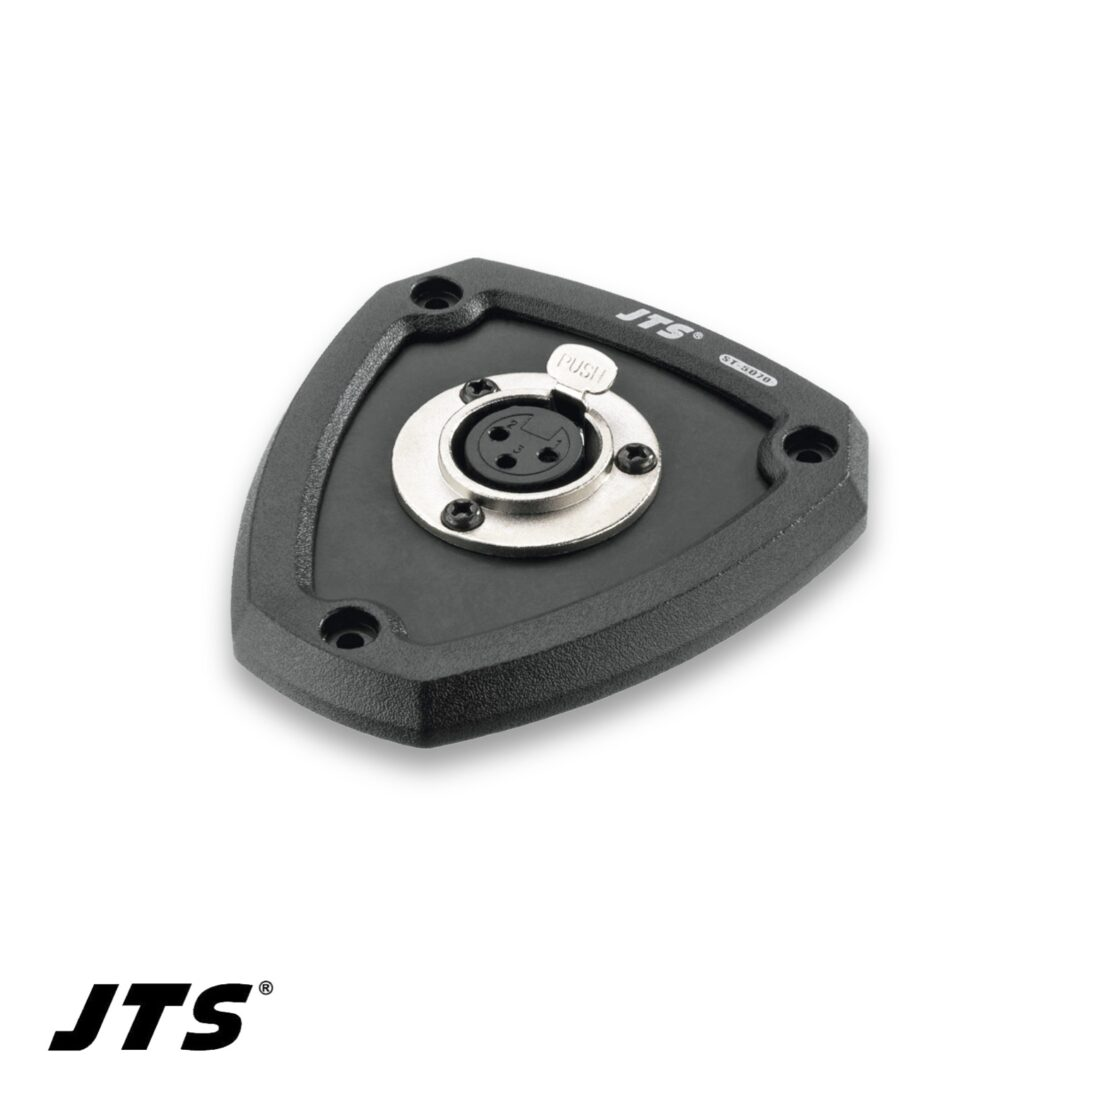 JTS ST-5070 top